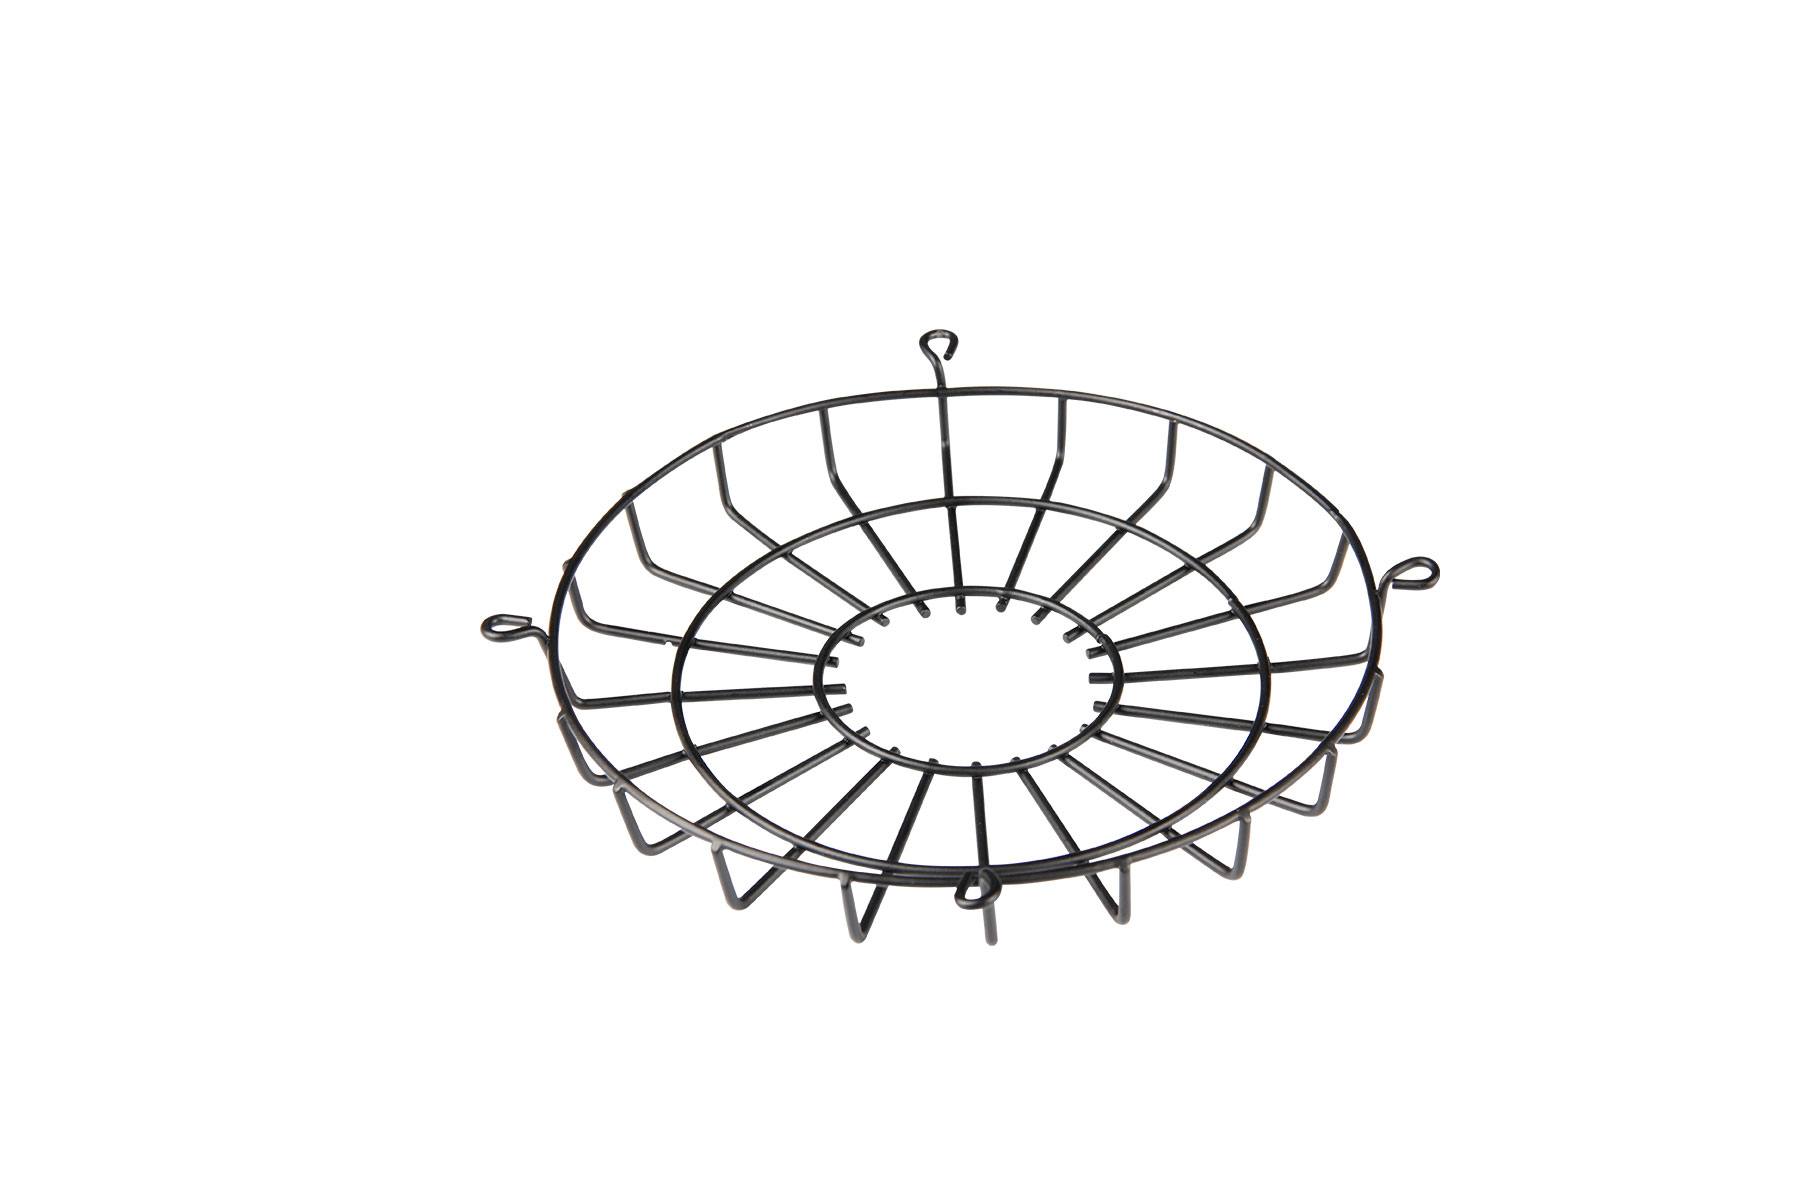 Wire Guard Gray for HBRA7 Round High Bay LED Light 100W